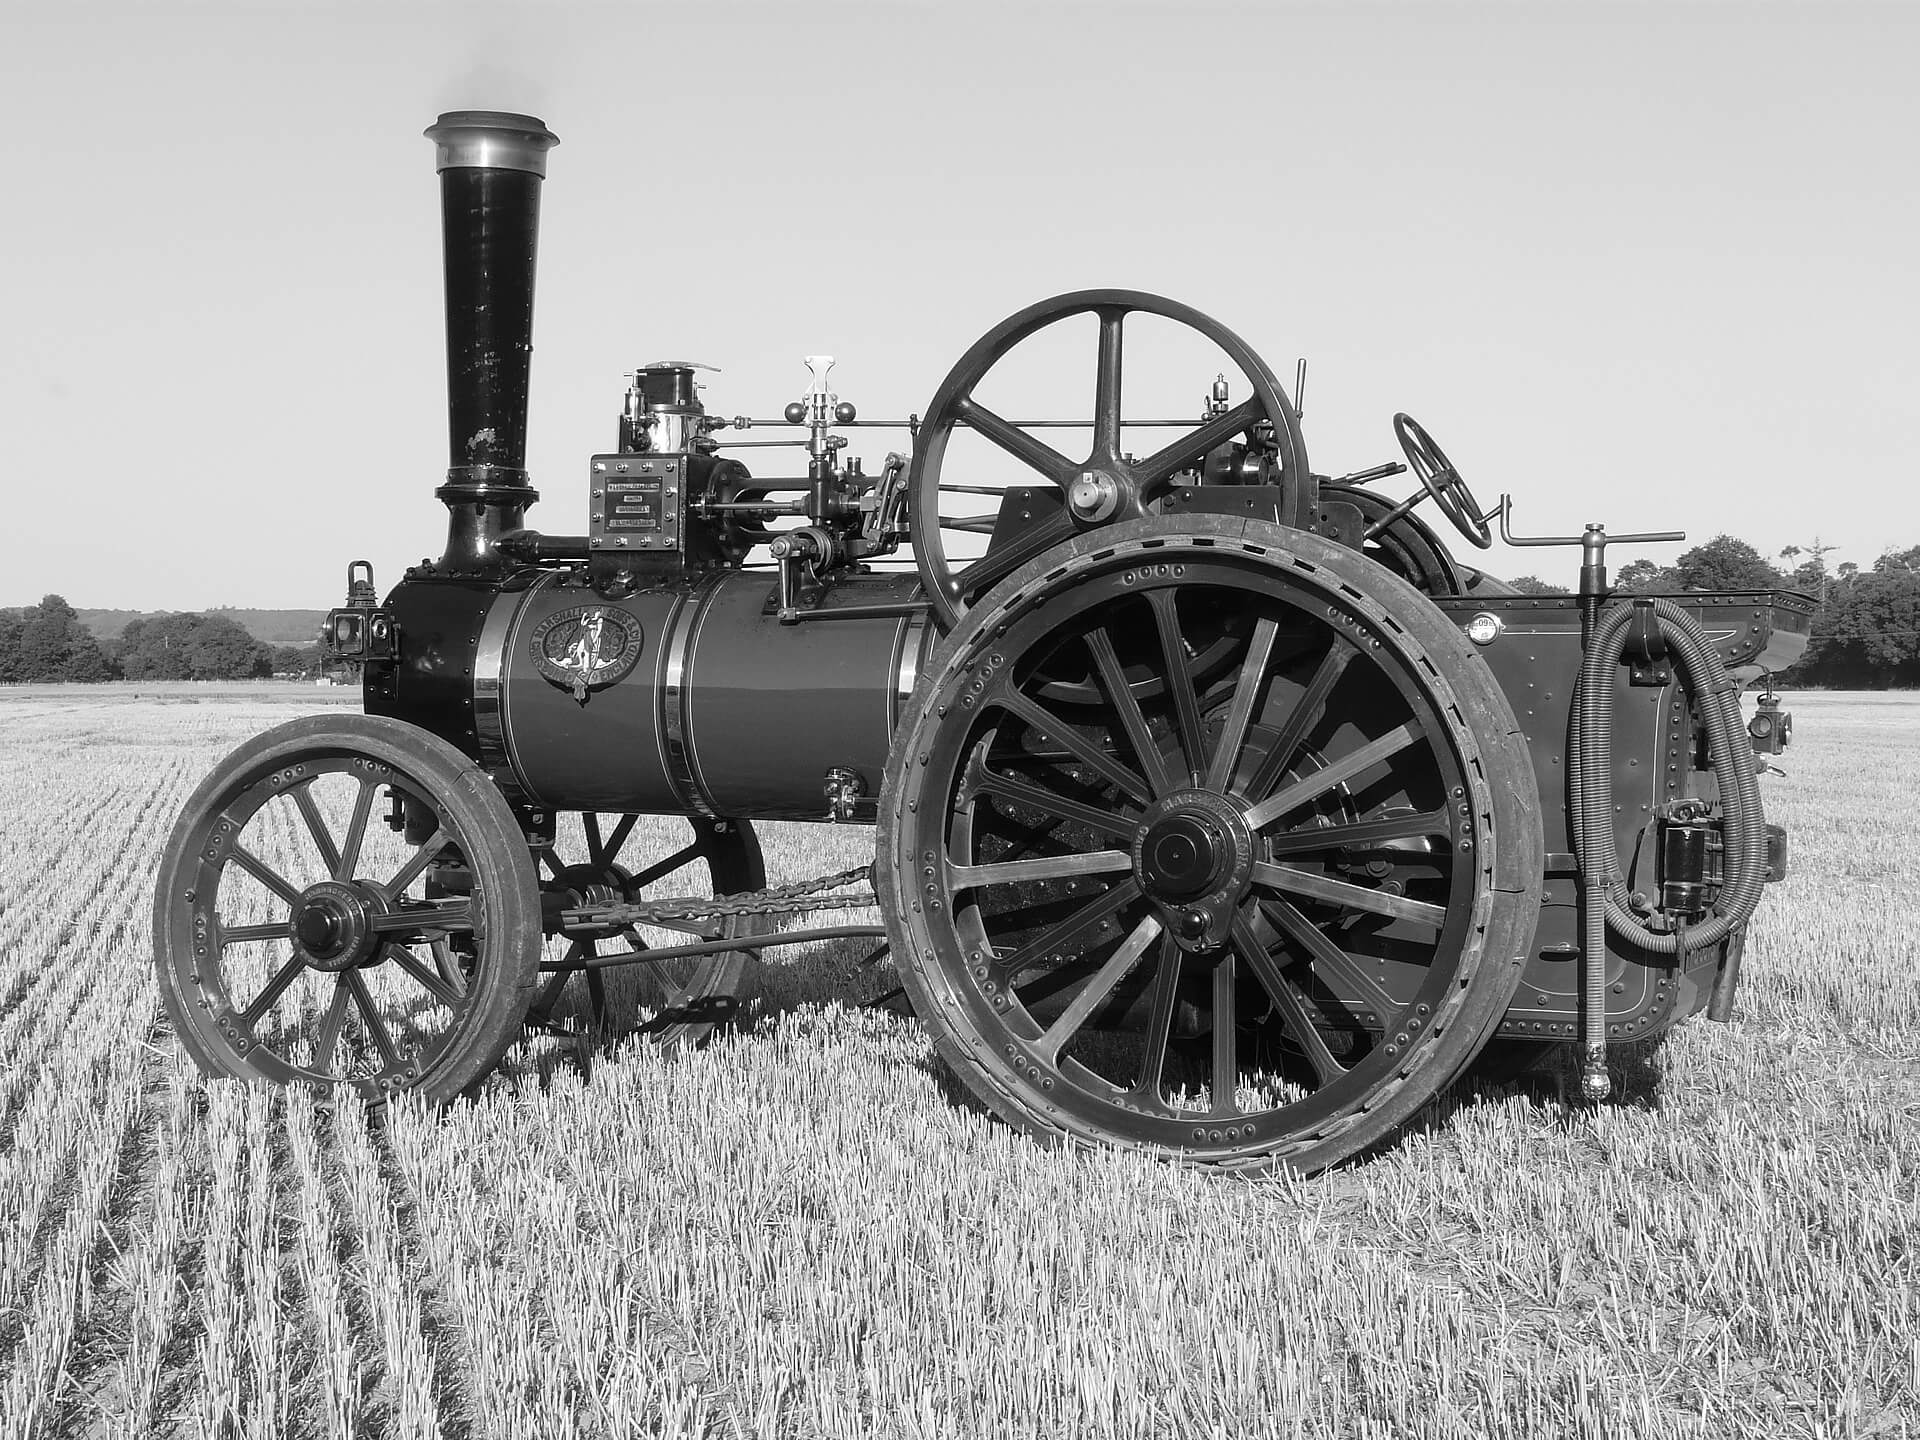 Marshall 14242, Victoria Empress of India at Harvesting the Old Fashioned Way 2009